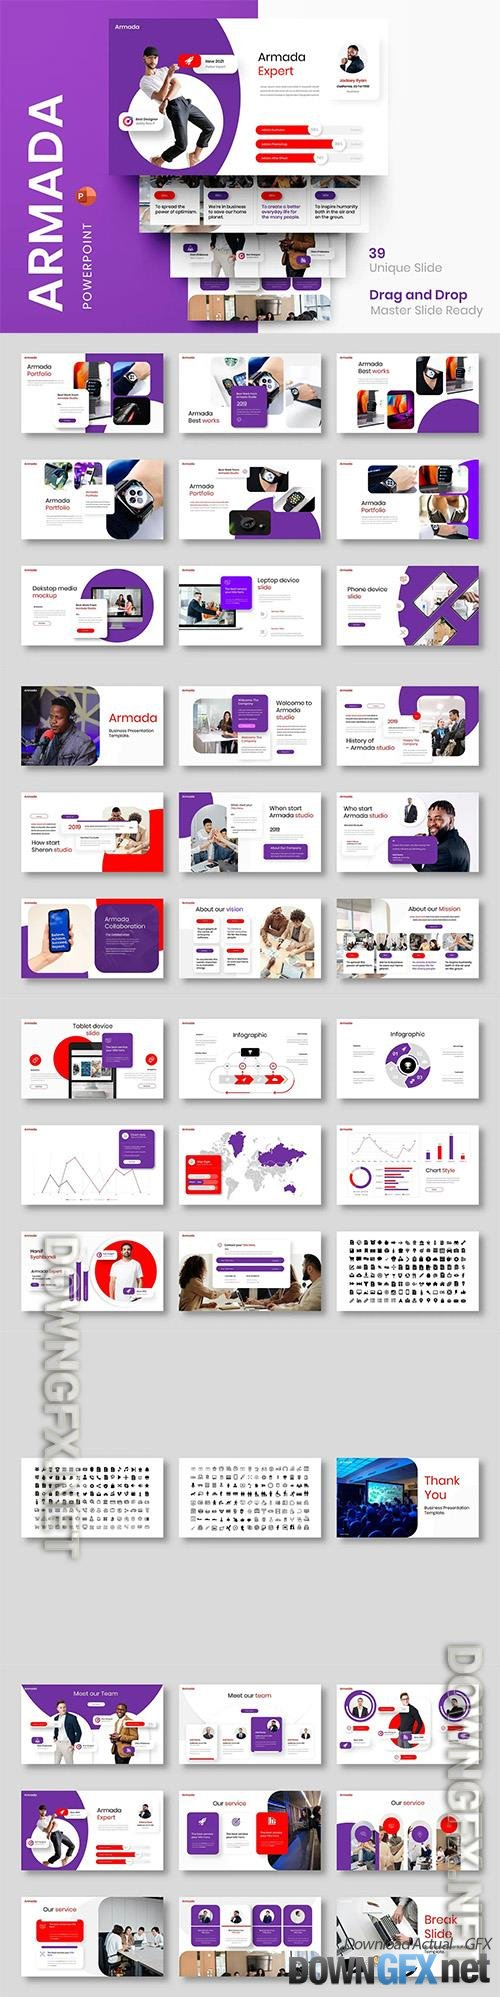 Armada - Business Powerpoint, Keynote and Google Slides Template